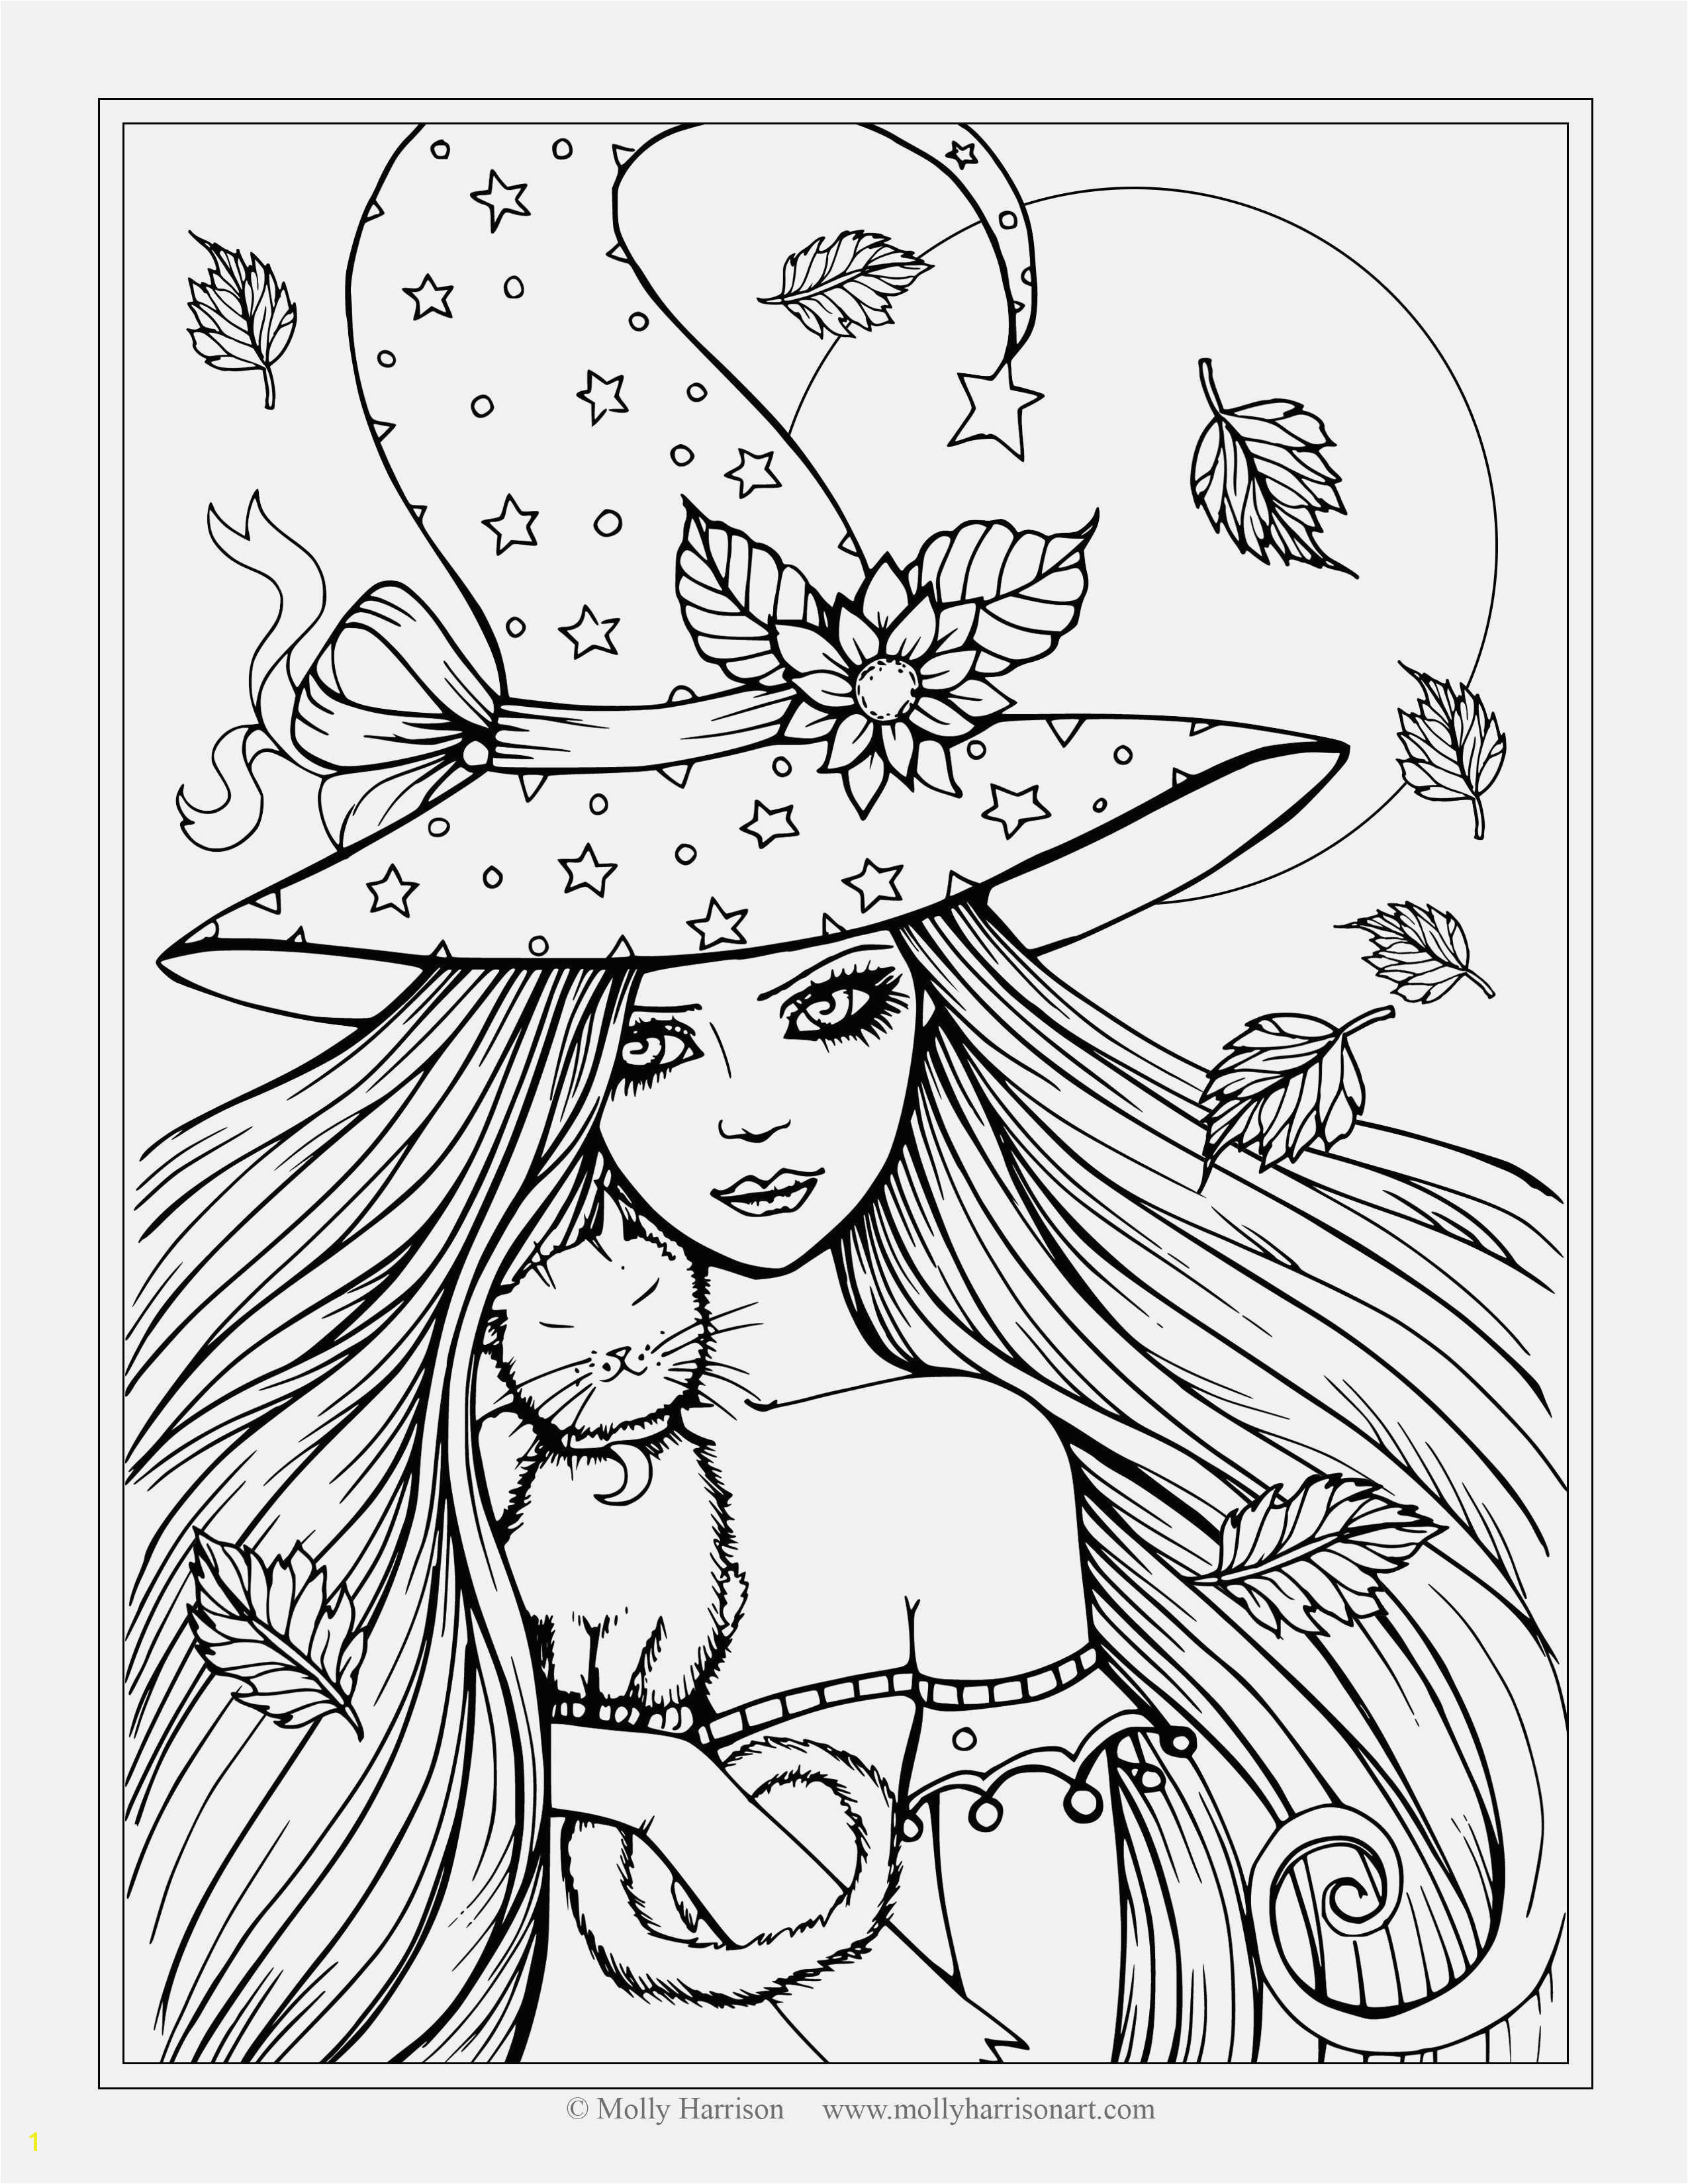 Link Coloring Pages to Print Elegant Coloring Pages Hard Easy and Fun Adult Coloring Book Pages